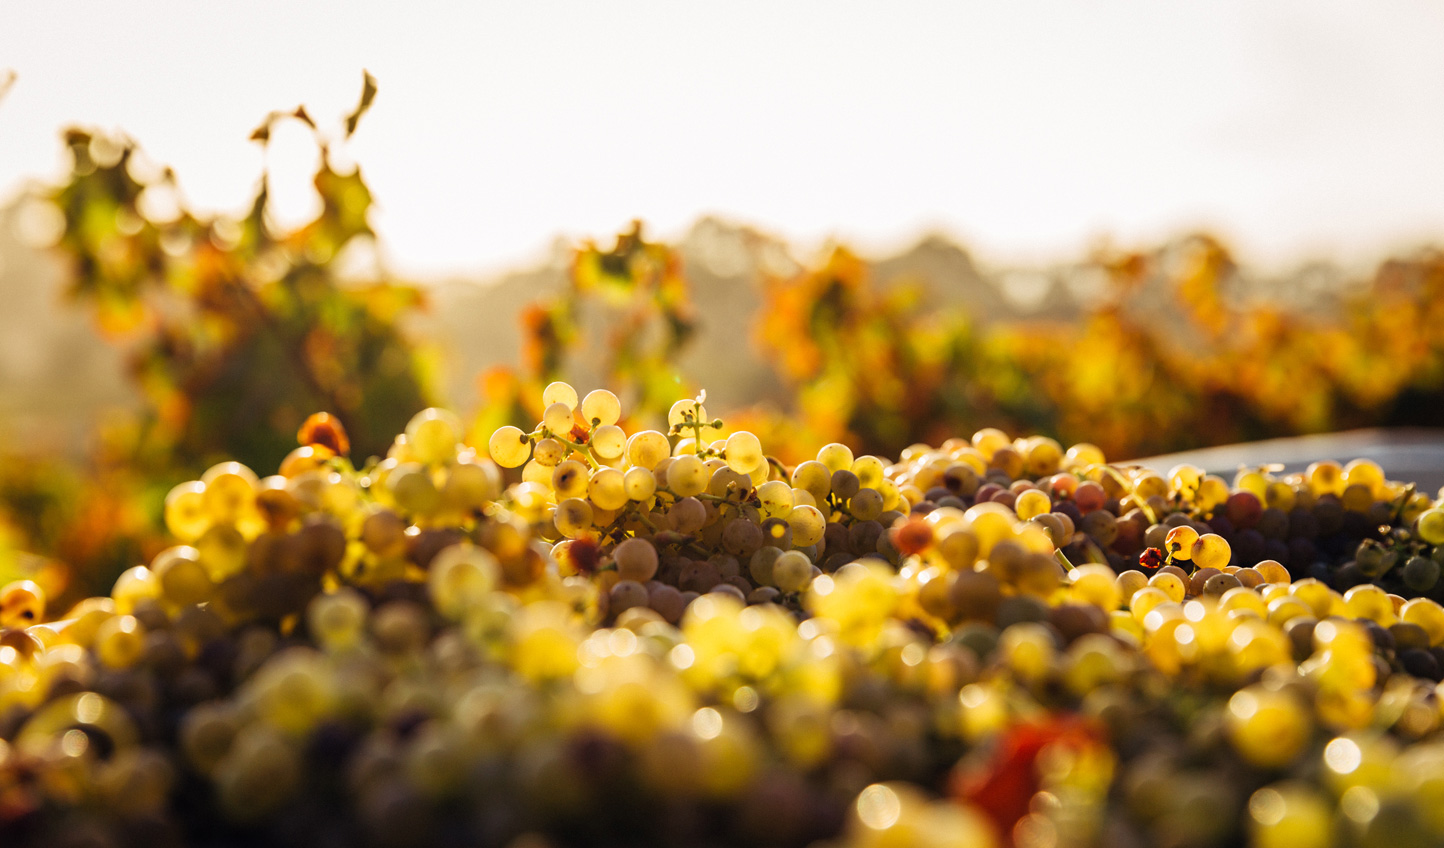 Learn to distinguish your chardonnay from your sauvignon blanc